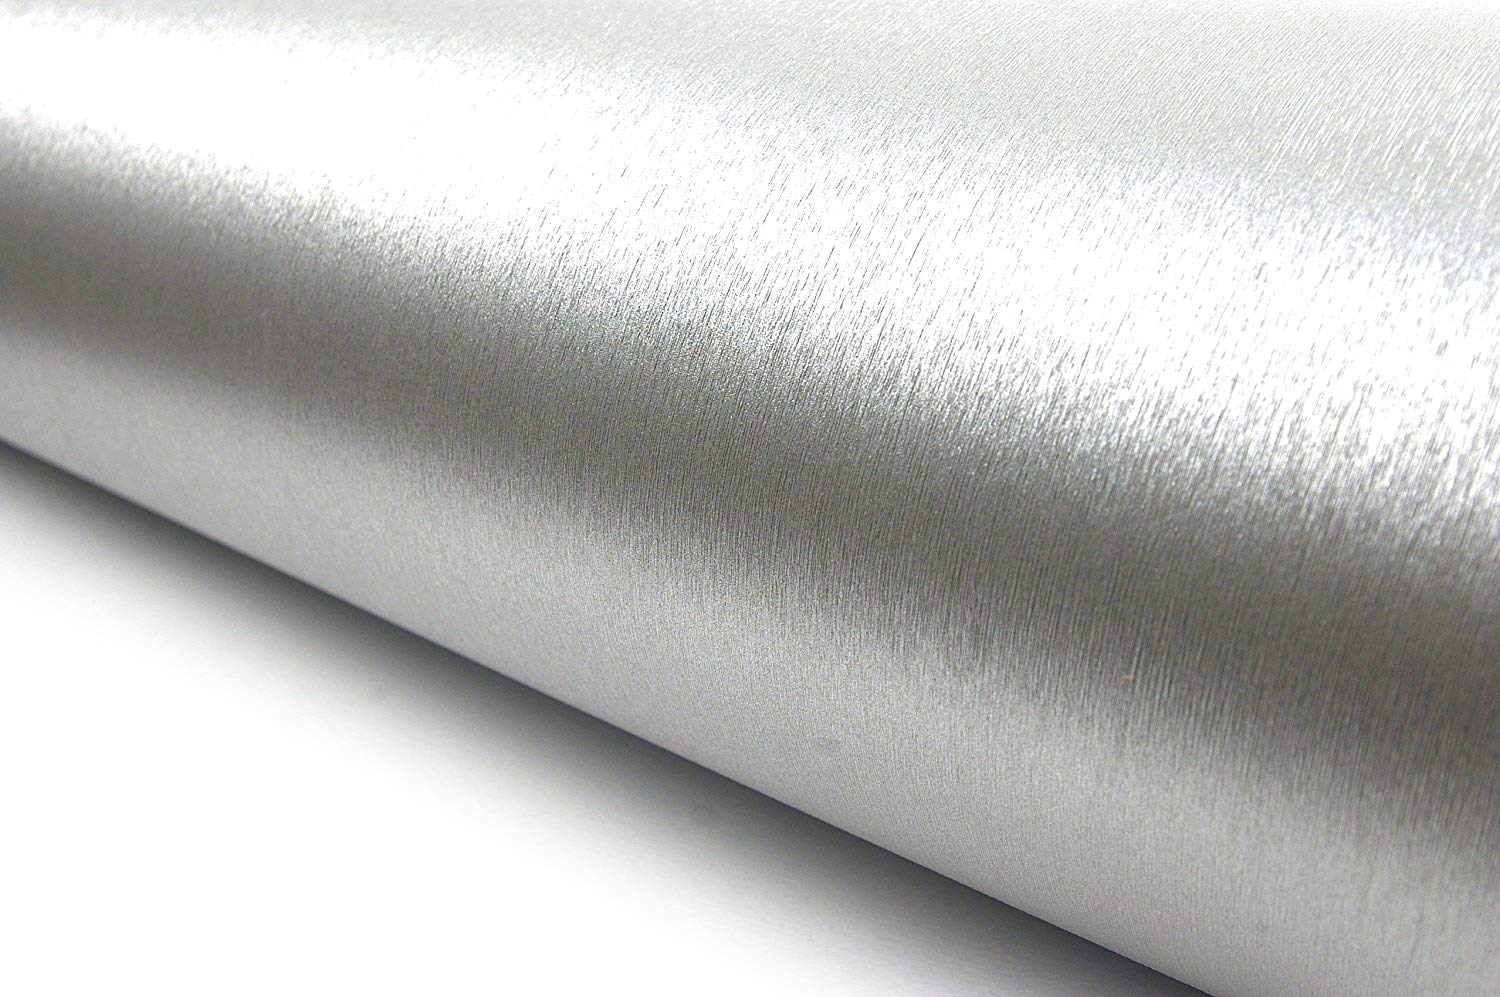 Very Berry Sticker Brushed Metal Texture Contact Paper Film Vinyl Self Adhesive Peel-stick Removable (Silver)